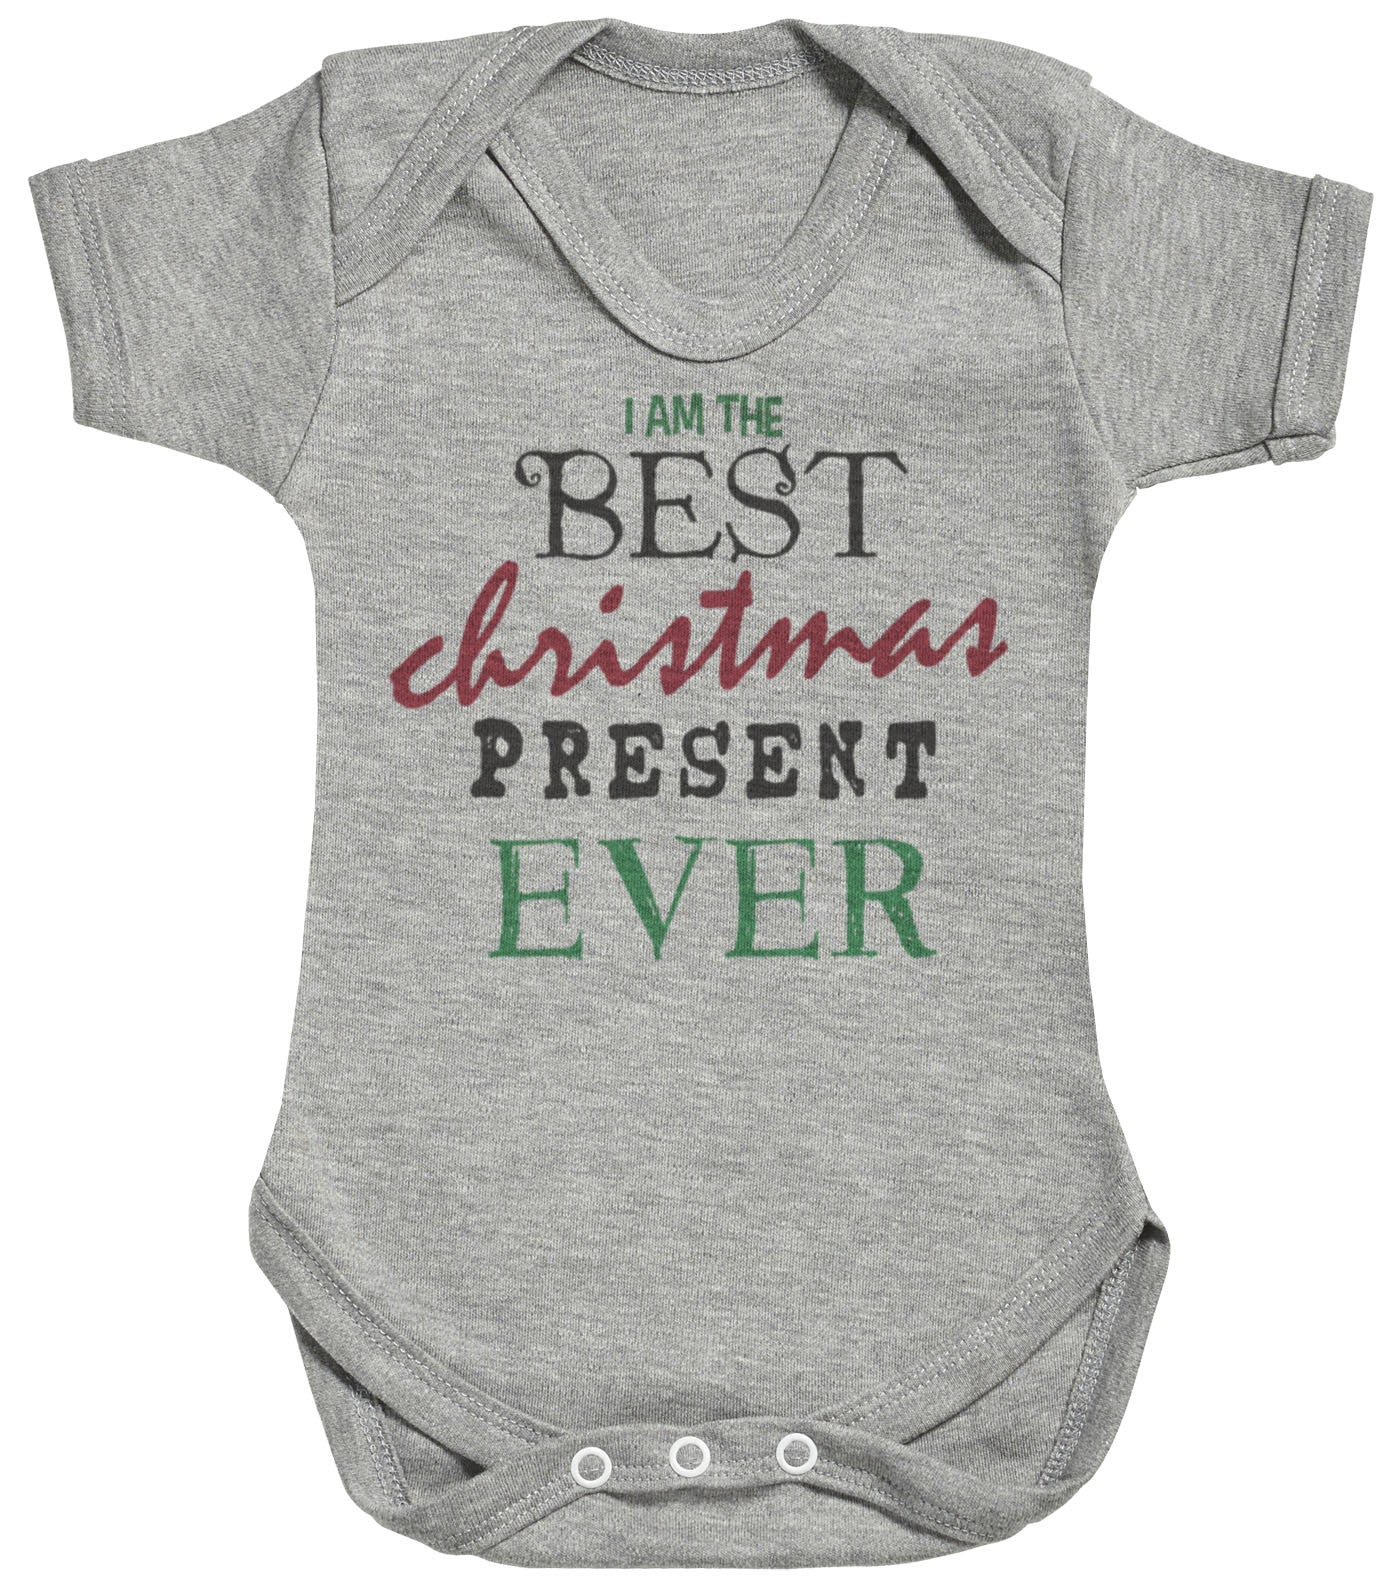 i am the best christmas present ever baby bodysuit babygrow - Best Christmas Present Ever